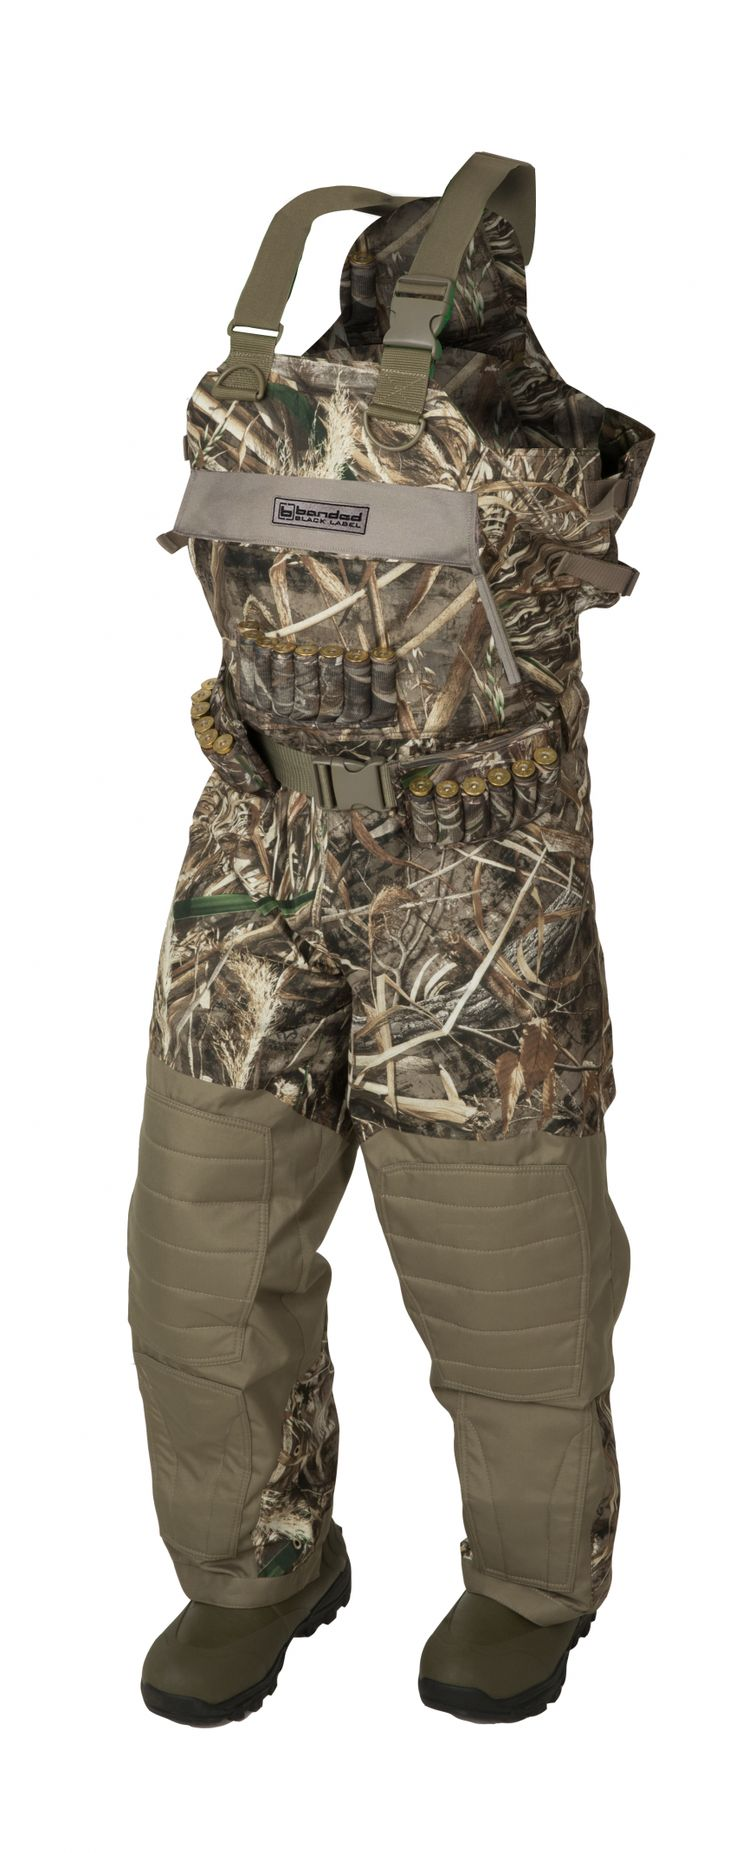 Realtree black label wader max-5 by Banded